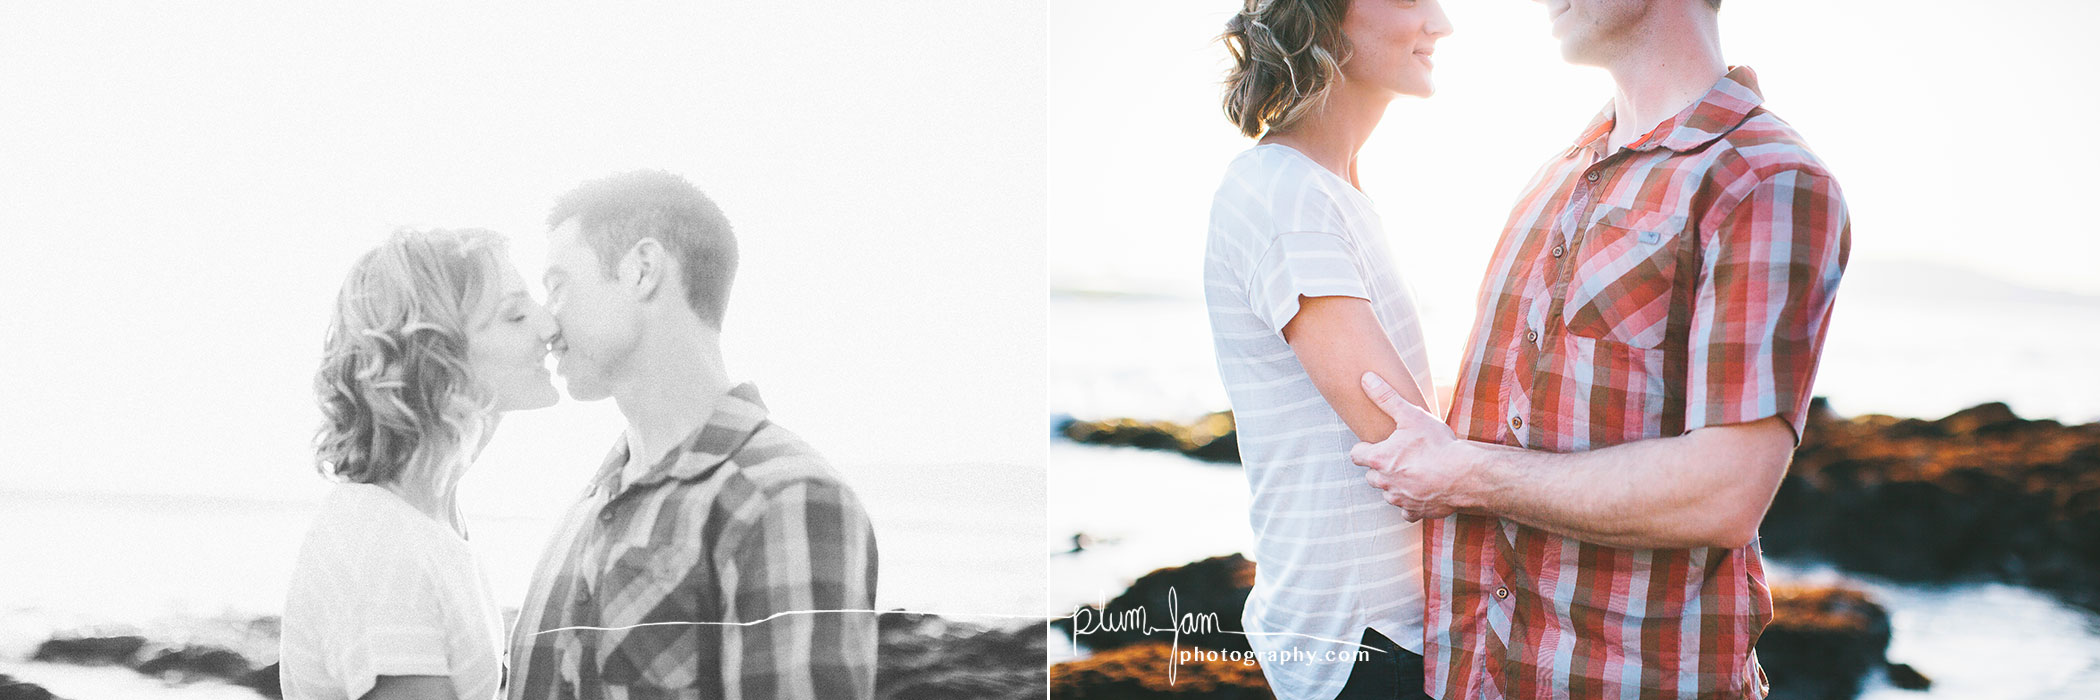 RebeccaMike-Engagement-vineyard-shellbeach-california-plumjamphotography-10